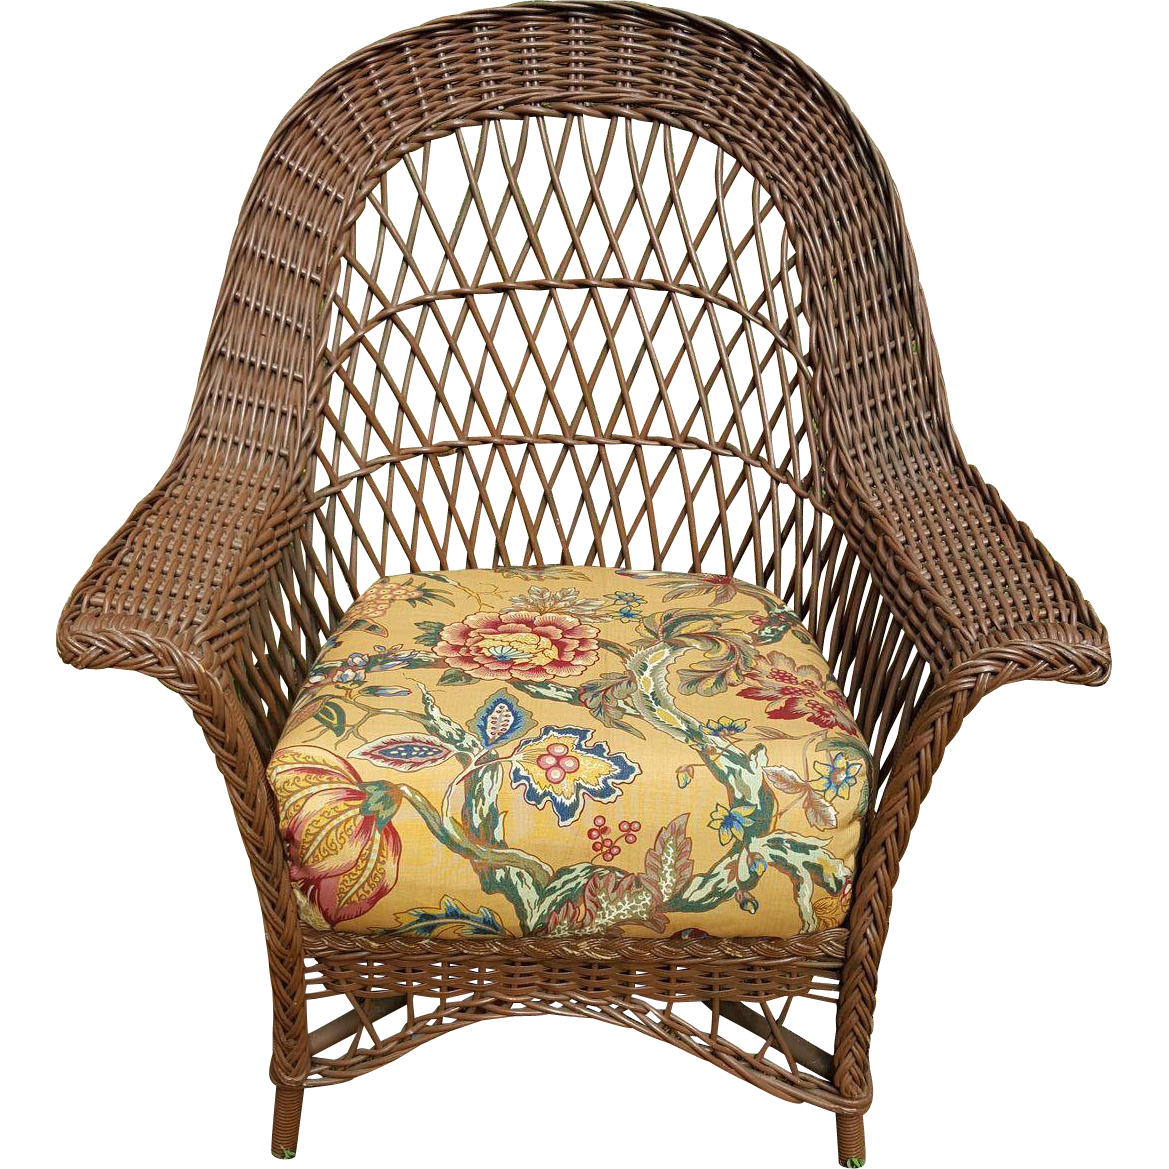 Charmant Vintage Bar Harbor Wicker Chair Circa 1920u0027s : Dovetail Antiques And  Collectibles | Ruby Lane